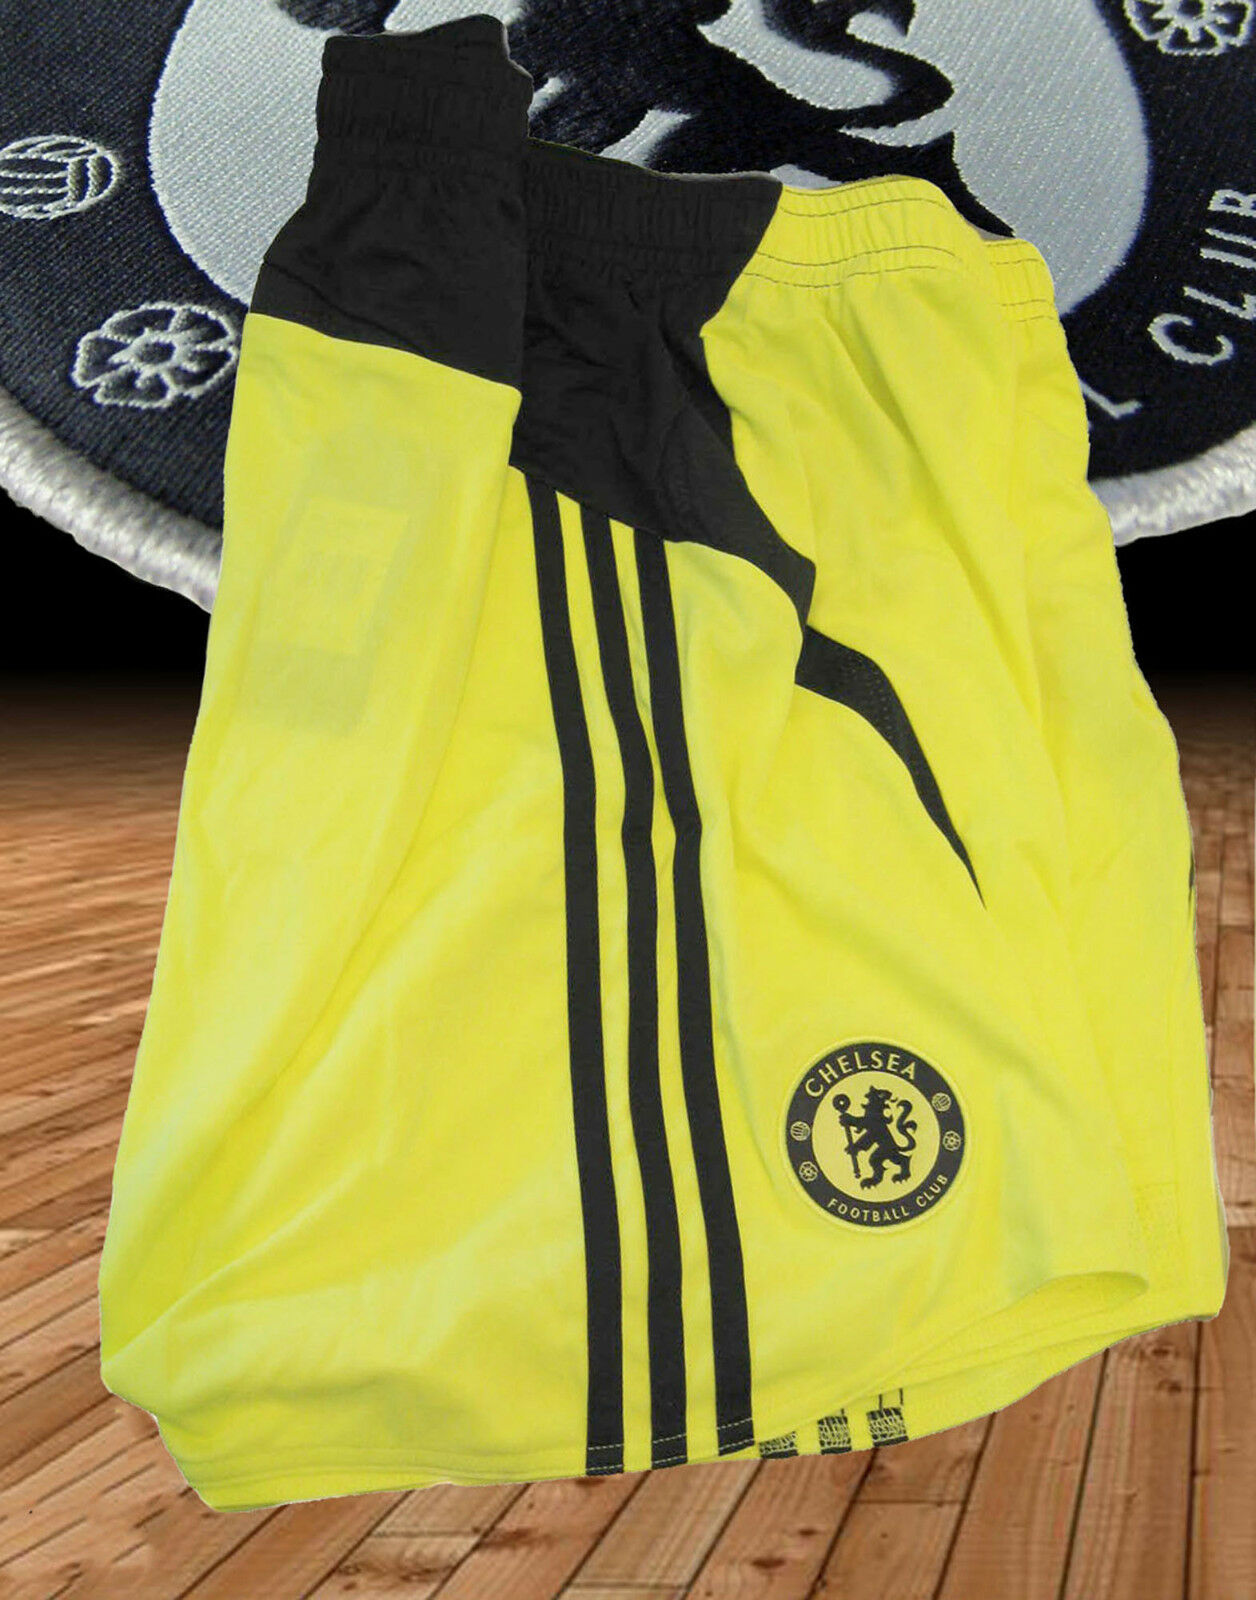 New Vintage adidas CHELSEA Football Shorts Player Issue Yellow 44